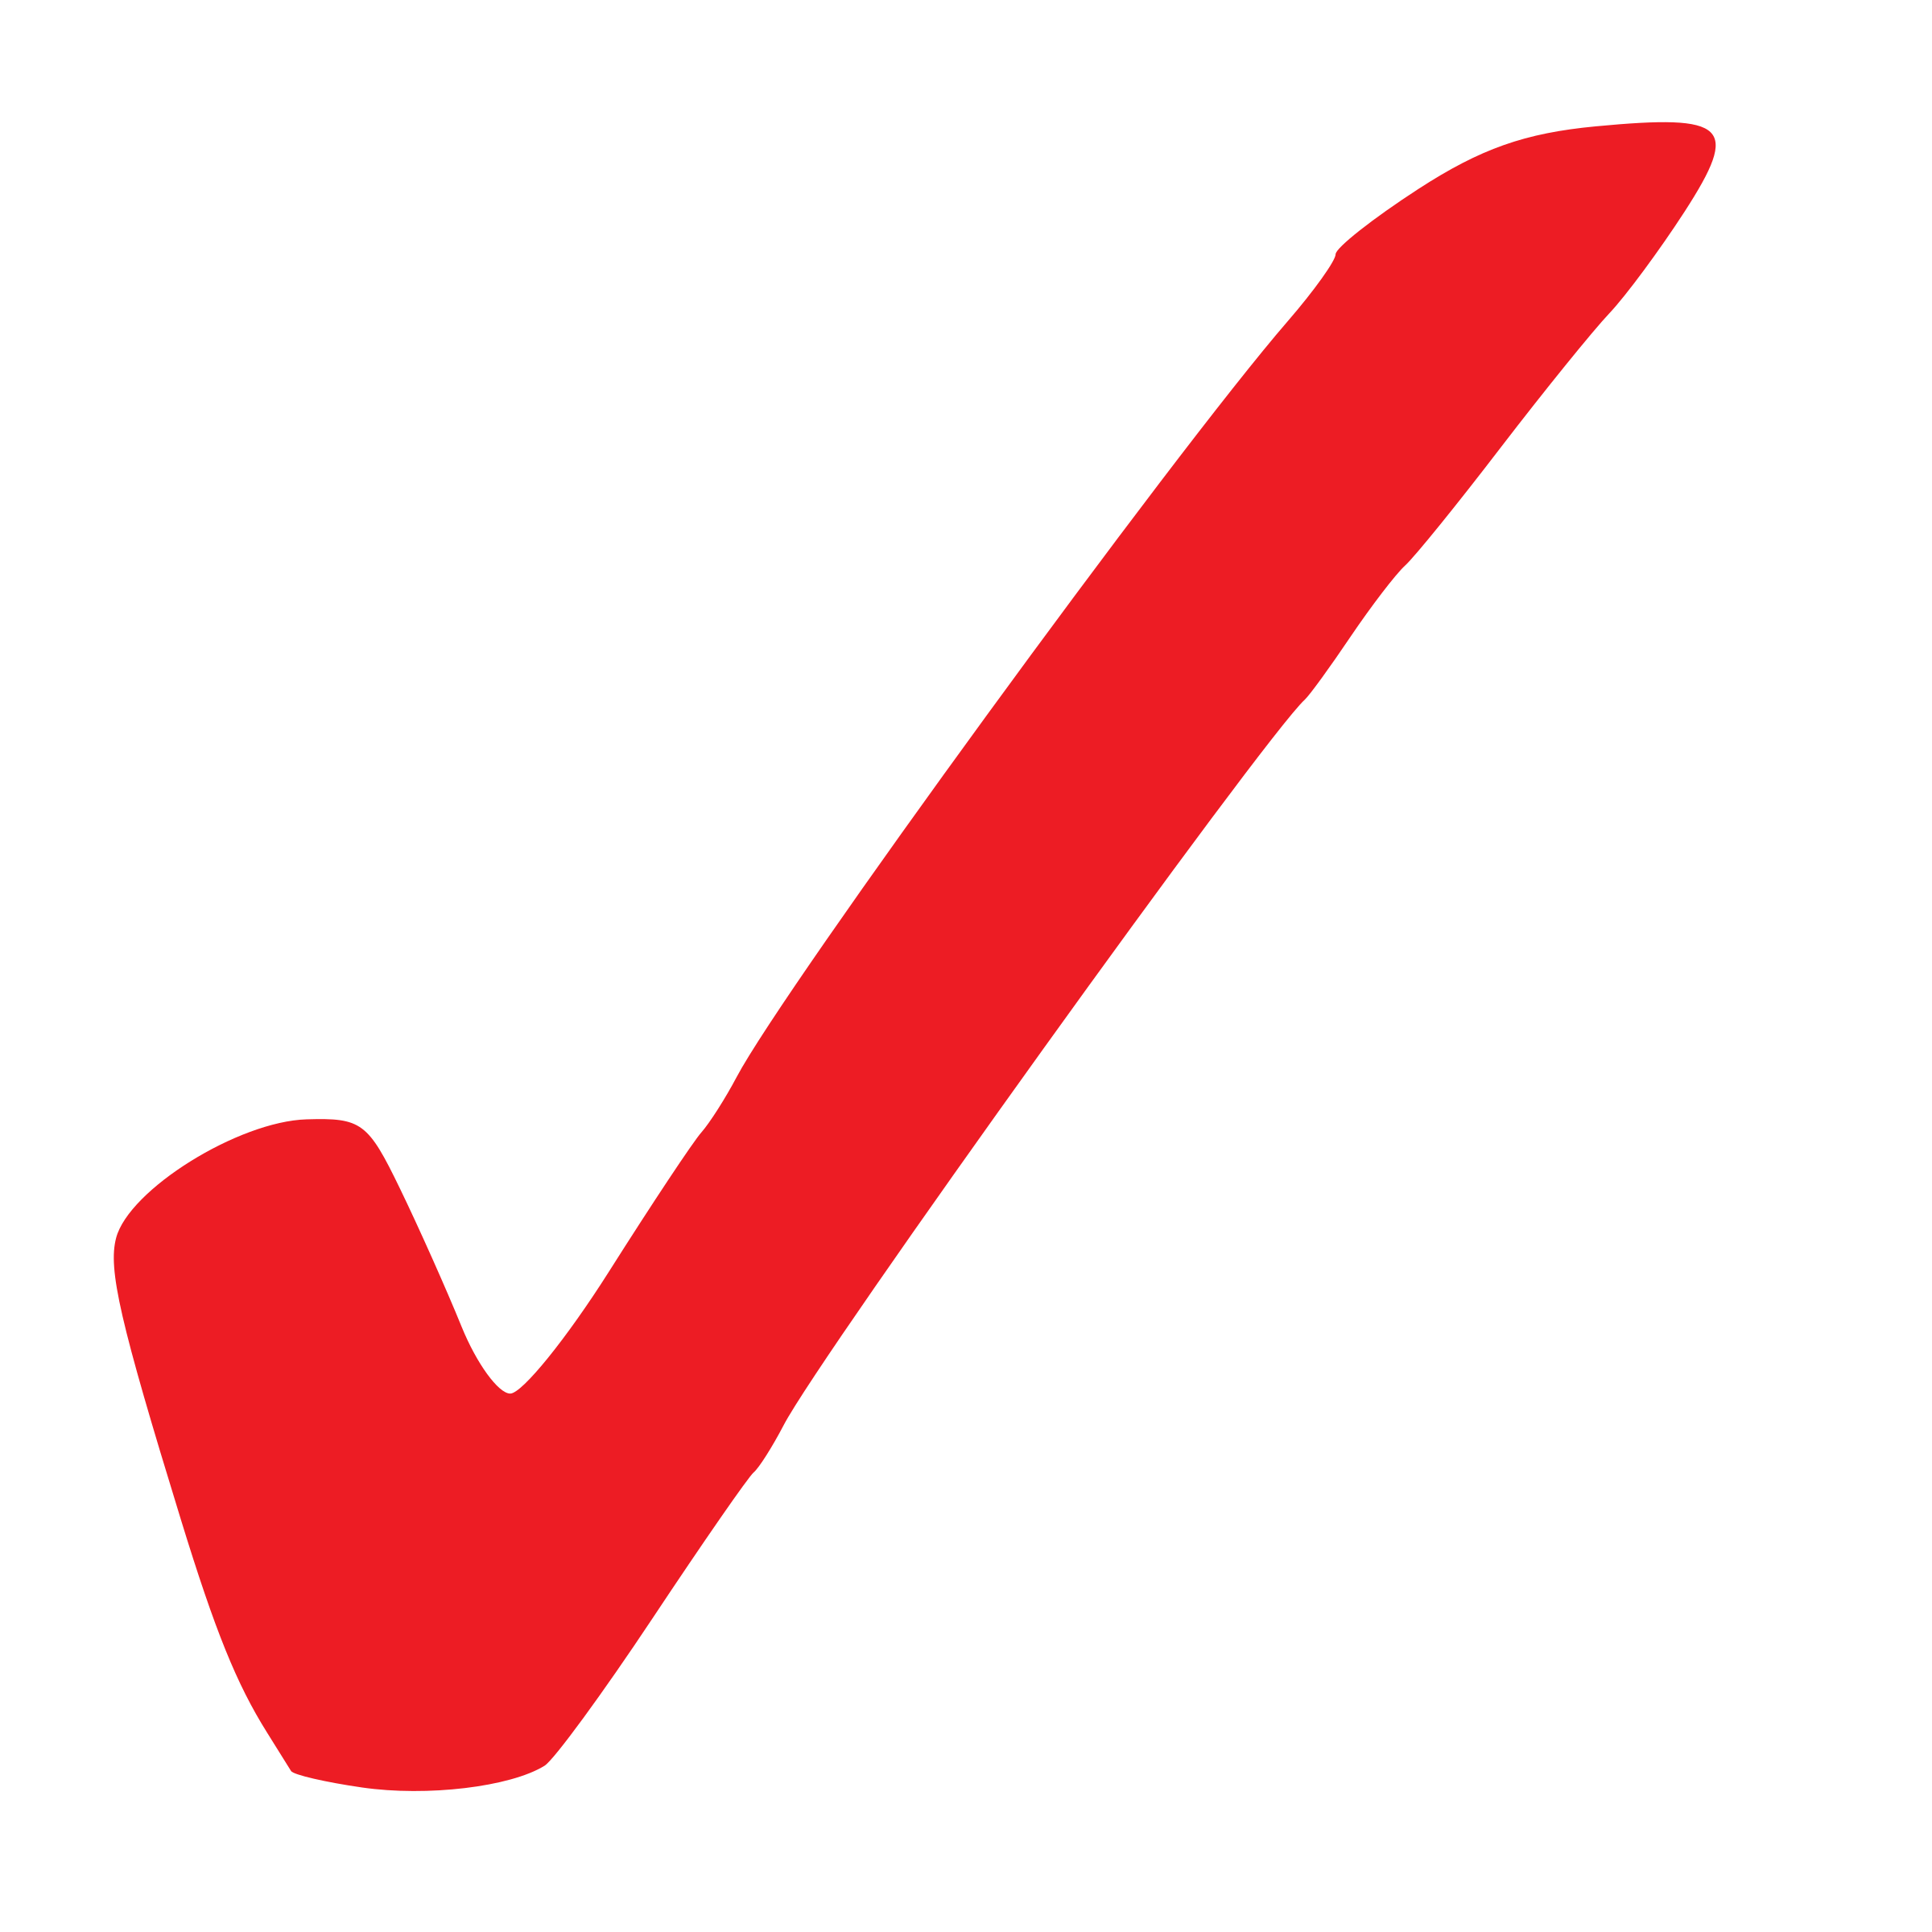 Simple Red Checkmark by thatsmyboy